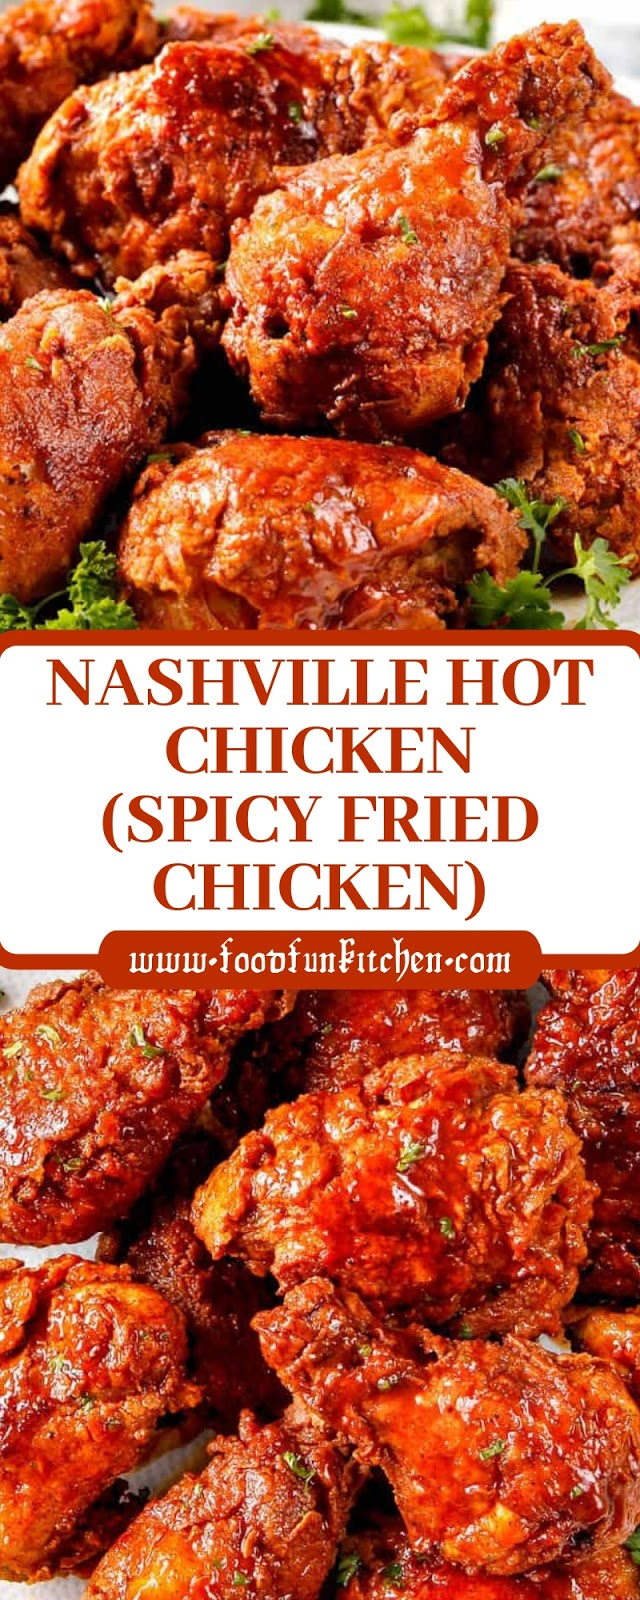 NASHVILLE HOT CHICKEN (SPICY FRIED CHICKEN)